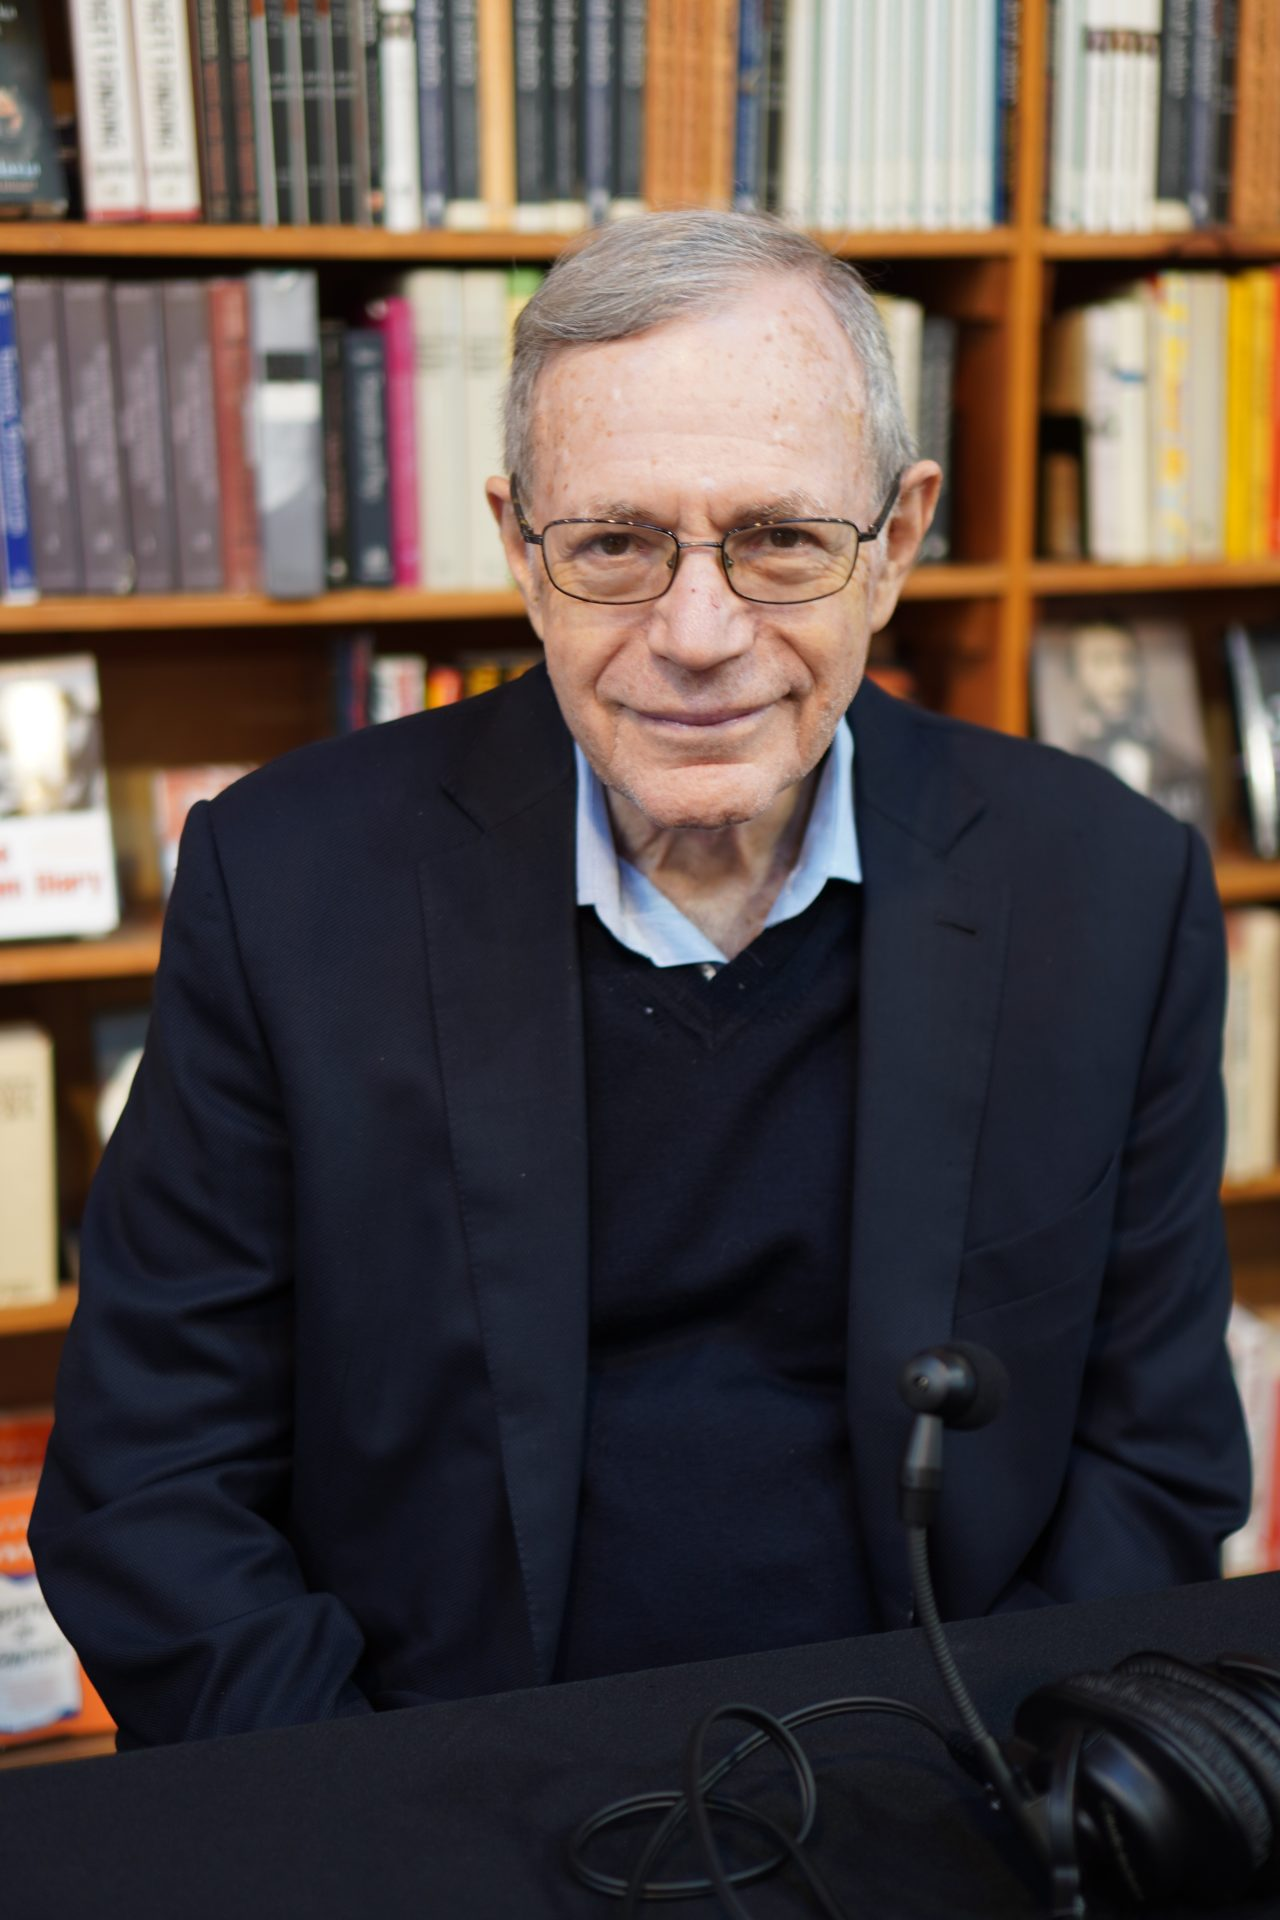 Pulitzer Prize-winning author and historian Eric Foner appears at the Midtown Scholar Book Store on October 4, 2019.